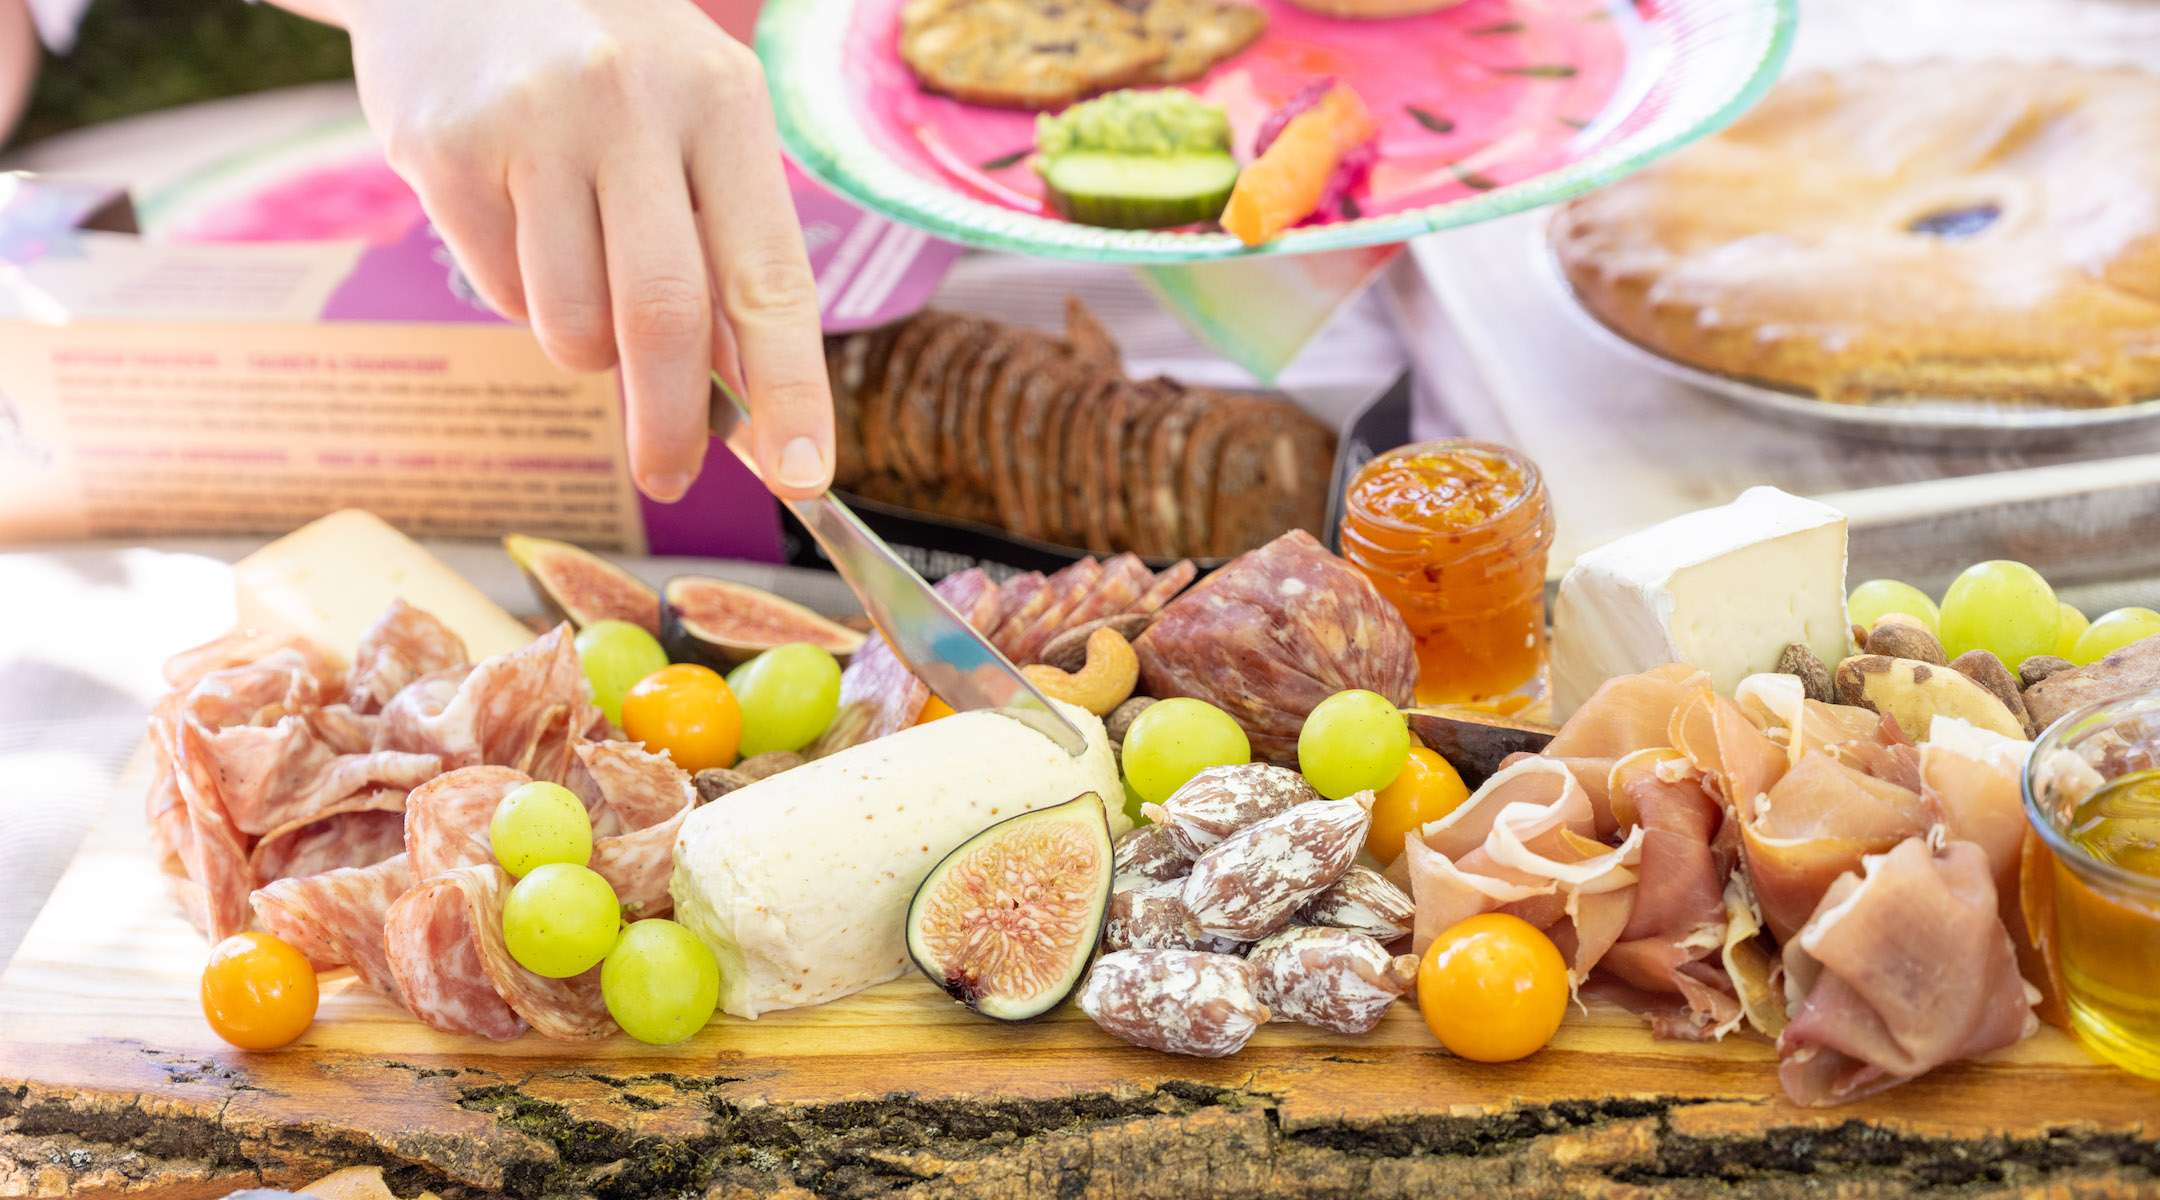 What to Pack in Your Summer Picnic - Charcuteries